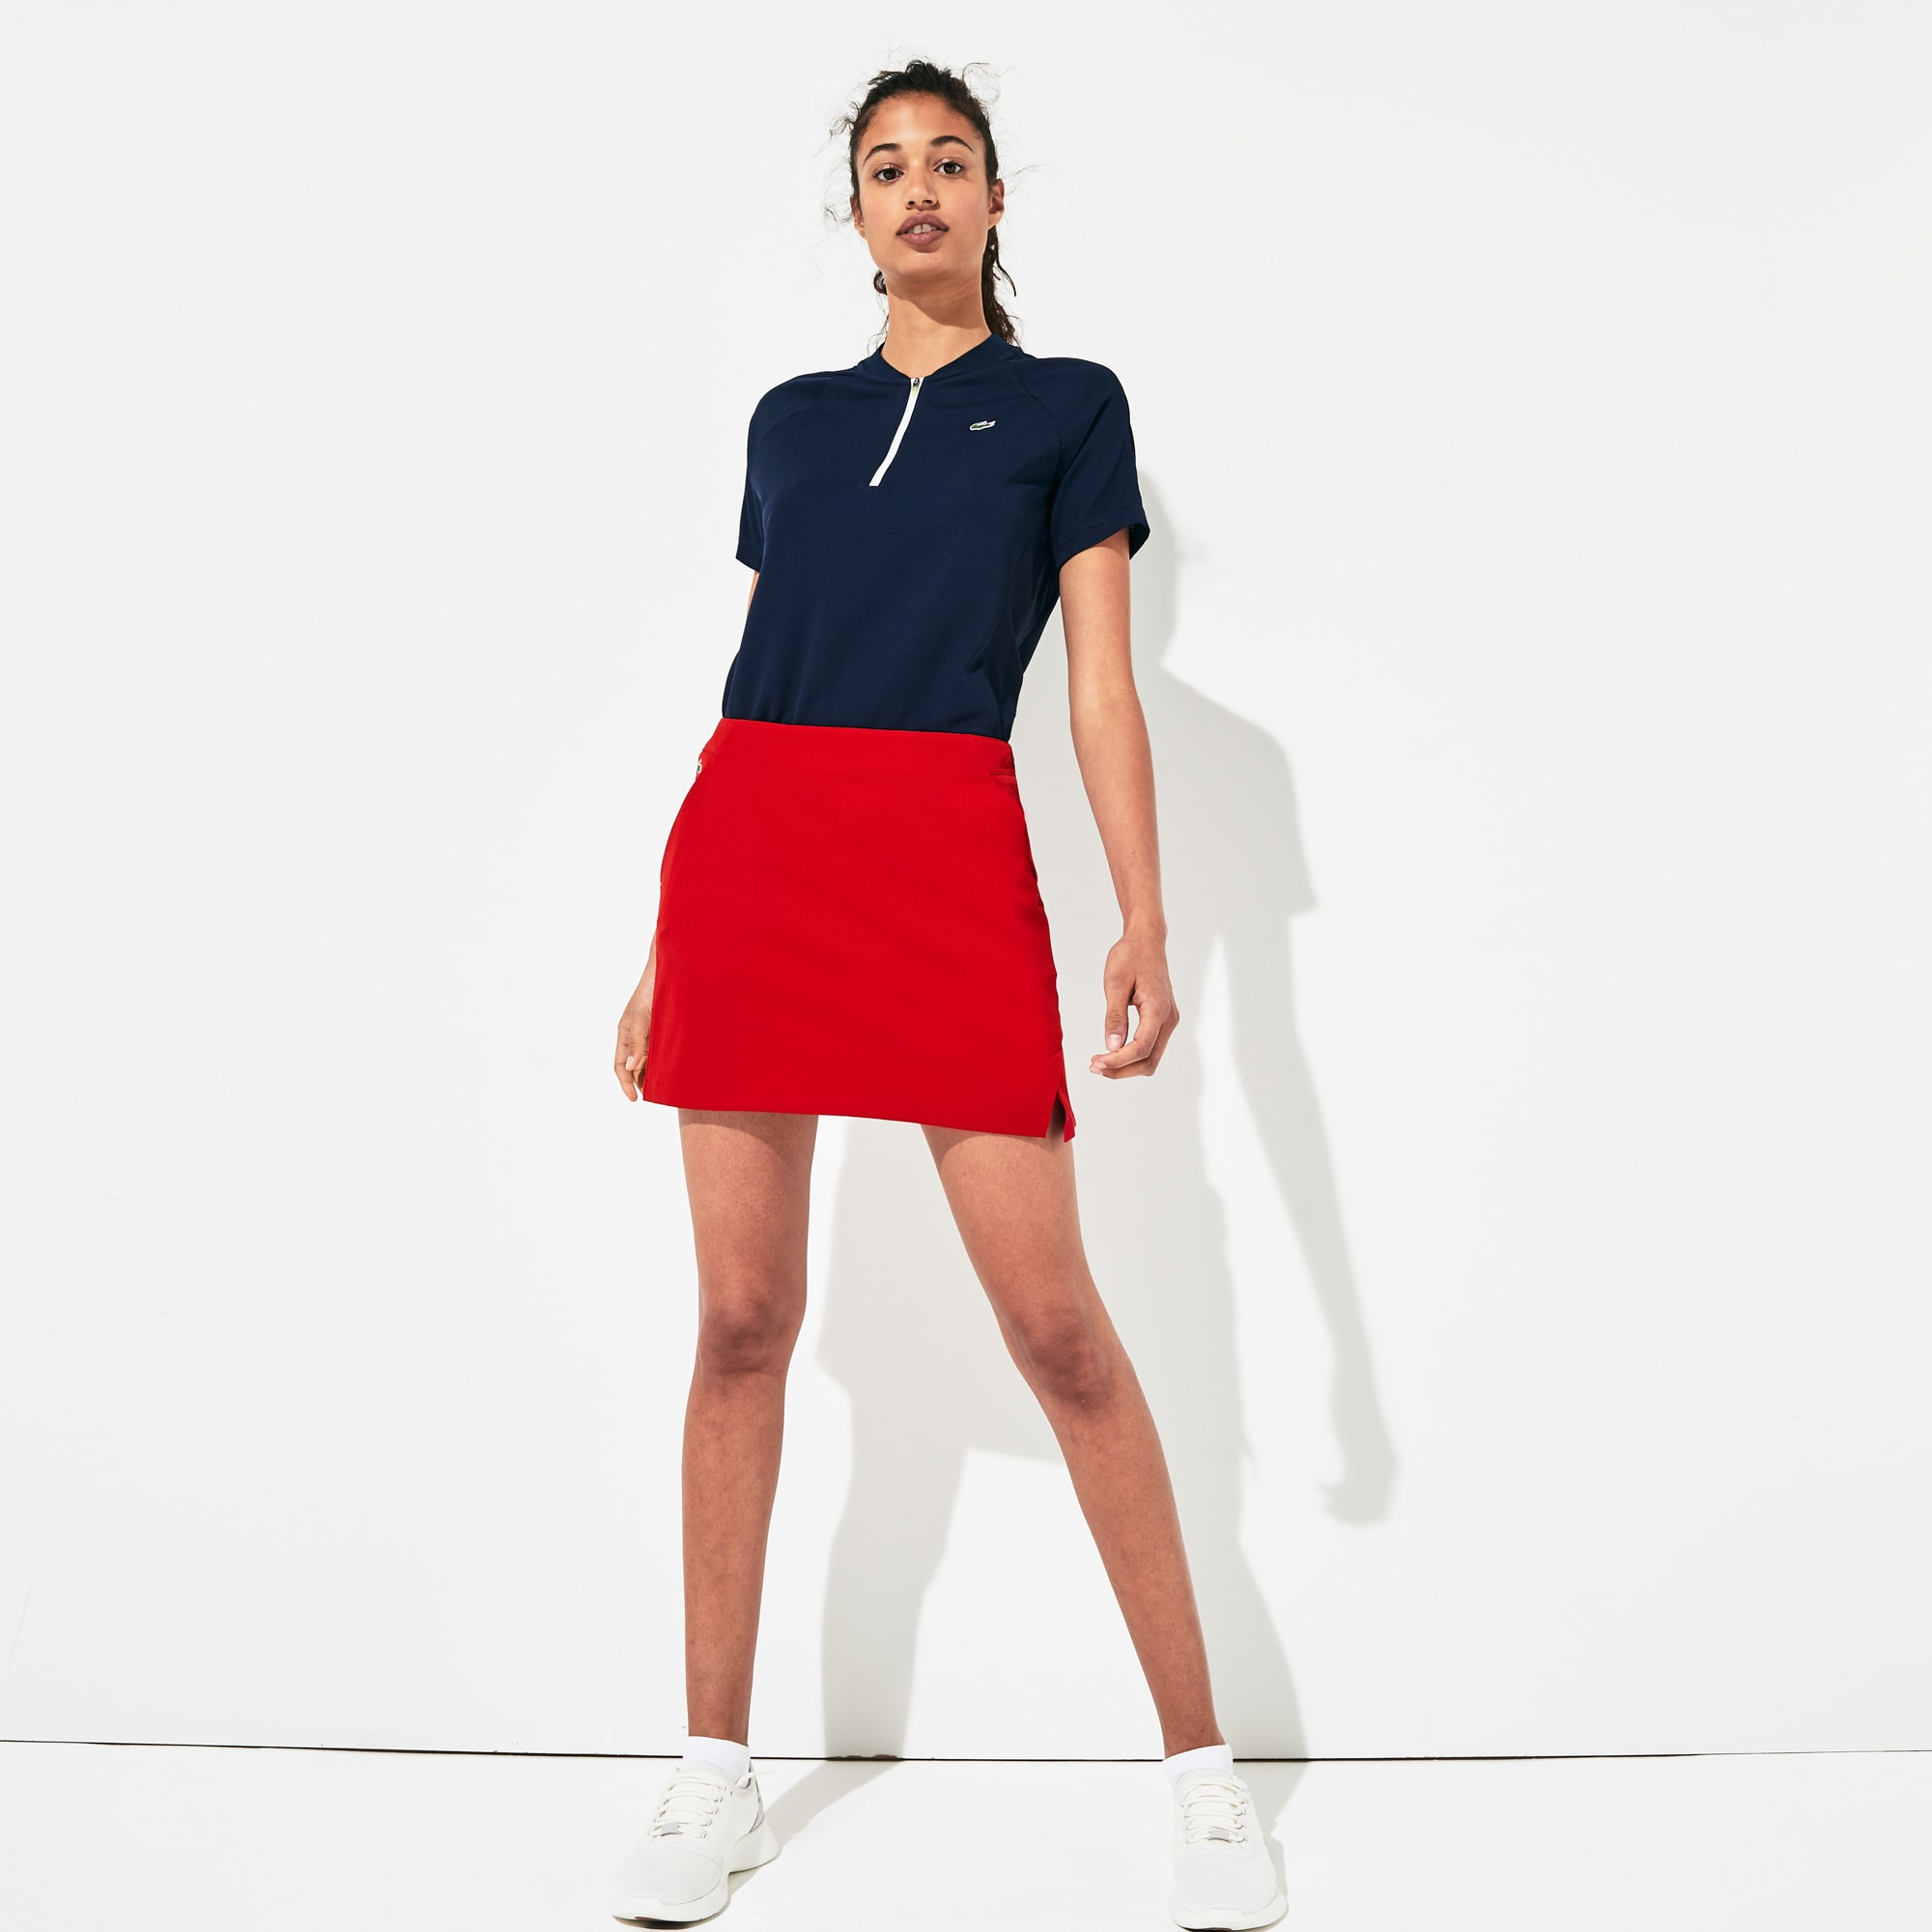 Women's SPORT Built-In Shorts Stretch Golf Skirt